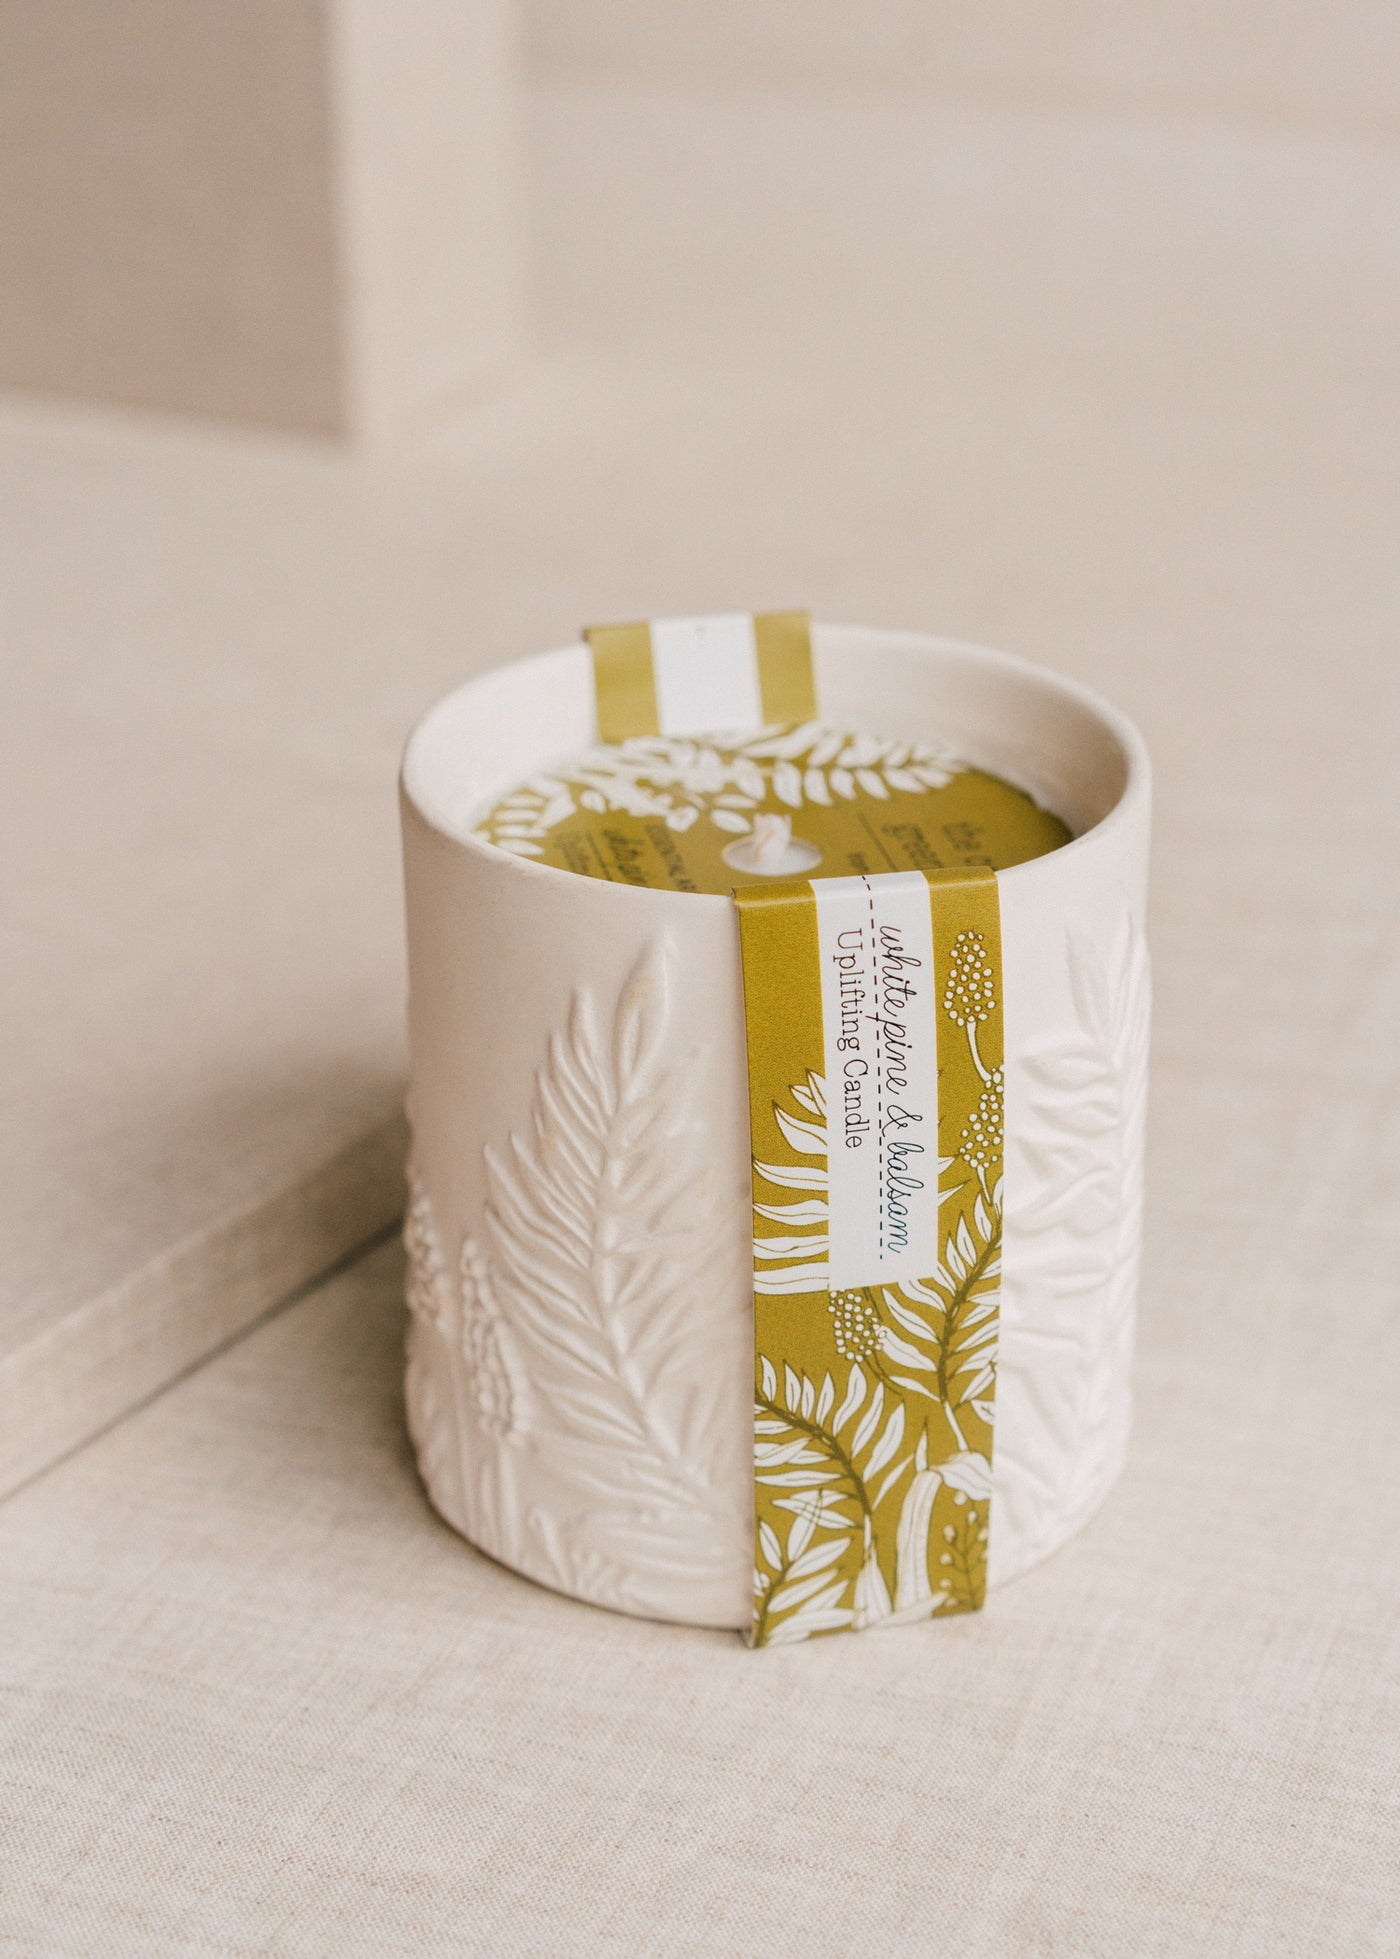 White Pine & Balsam Ceramic Candle